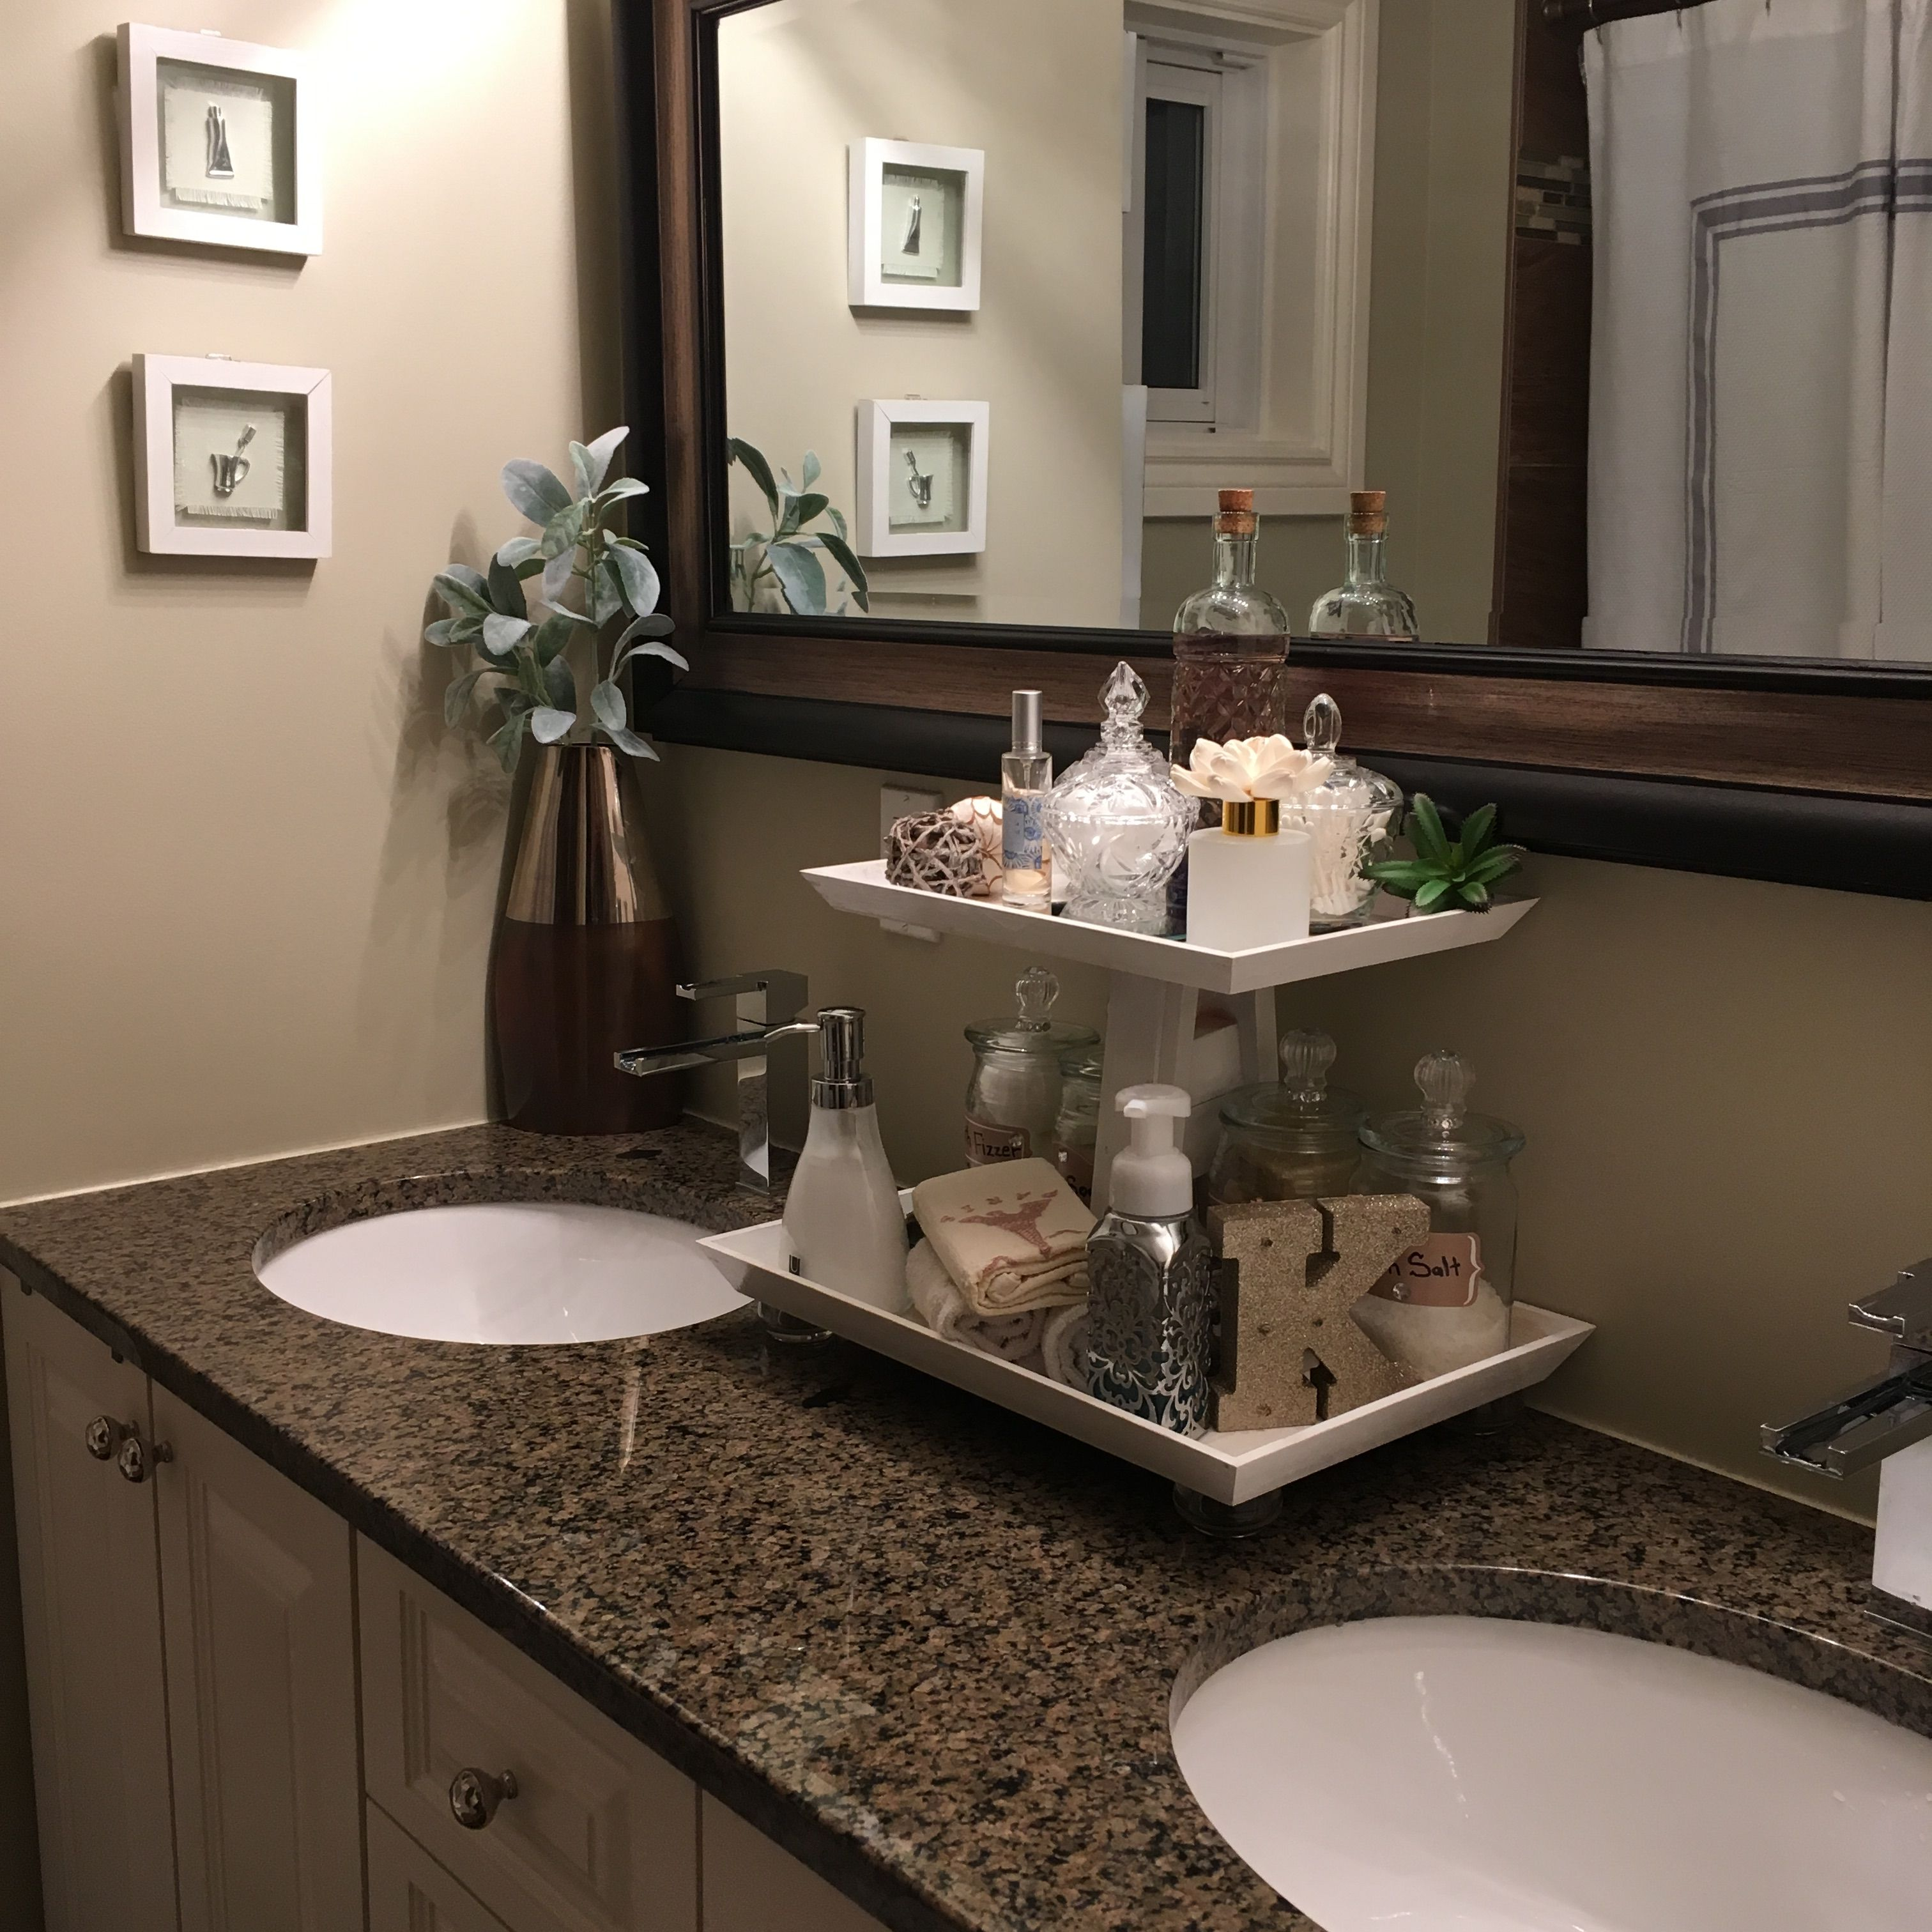 Pin By Kimberly Rodriguez Nadal On Eleven Hundred Bathroom Counter Decor Spa Bathroom Decor Bathroom Tray